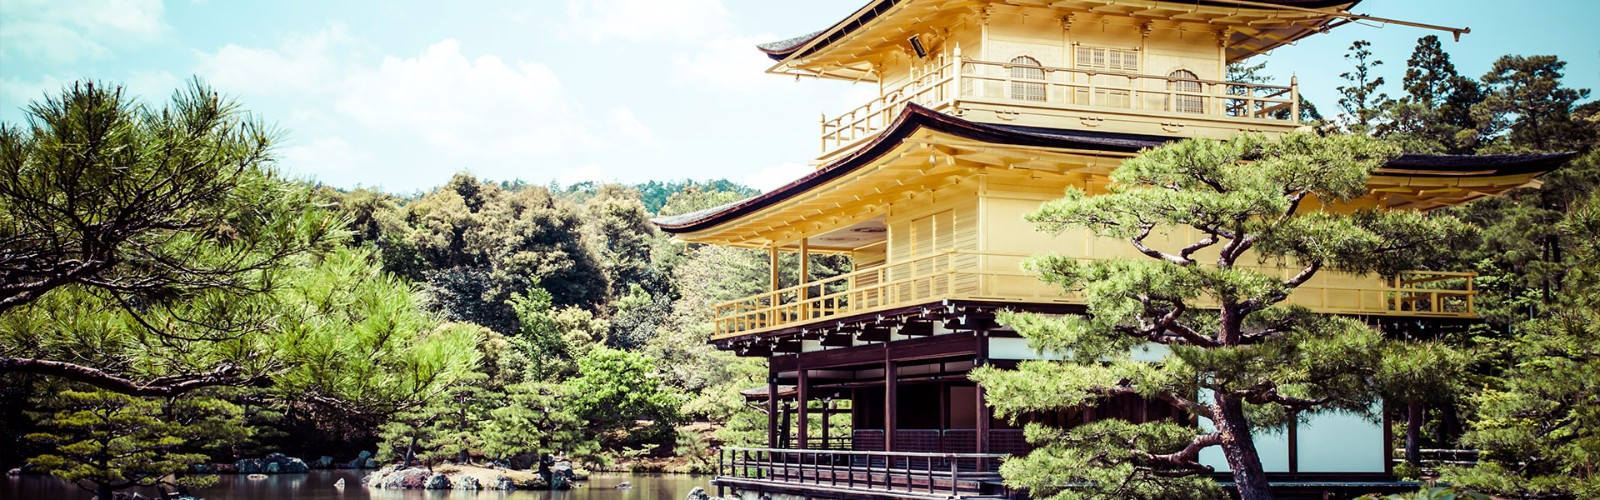 Japan & the Scenic South Tour | Wendy Wu Tours